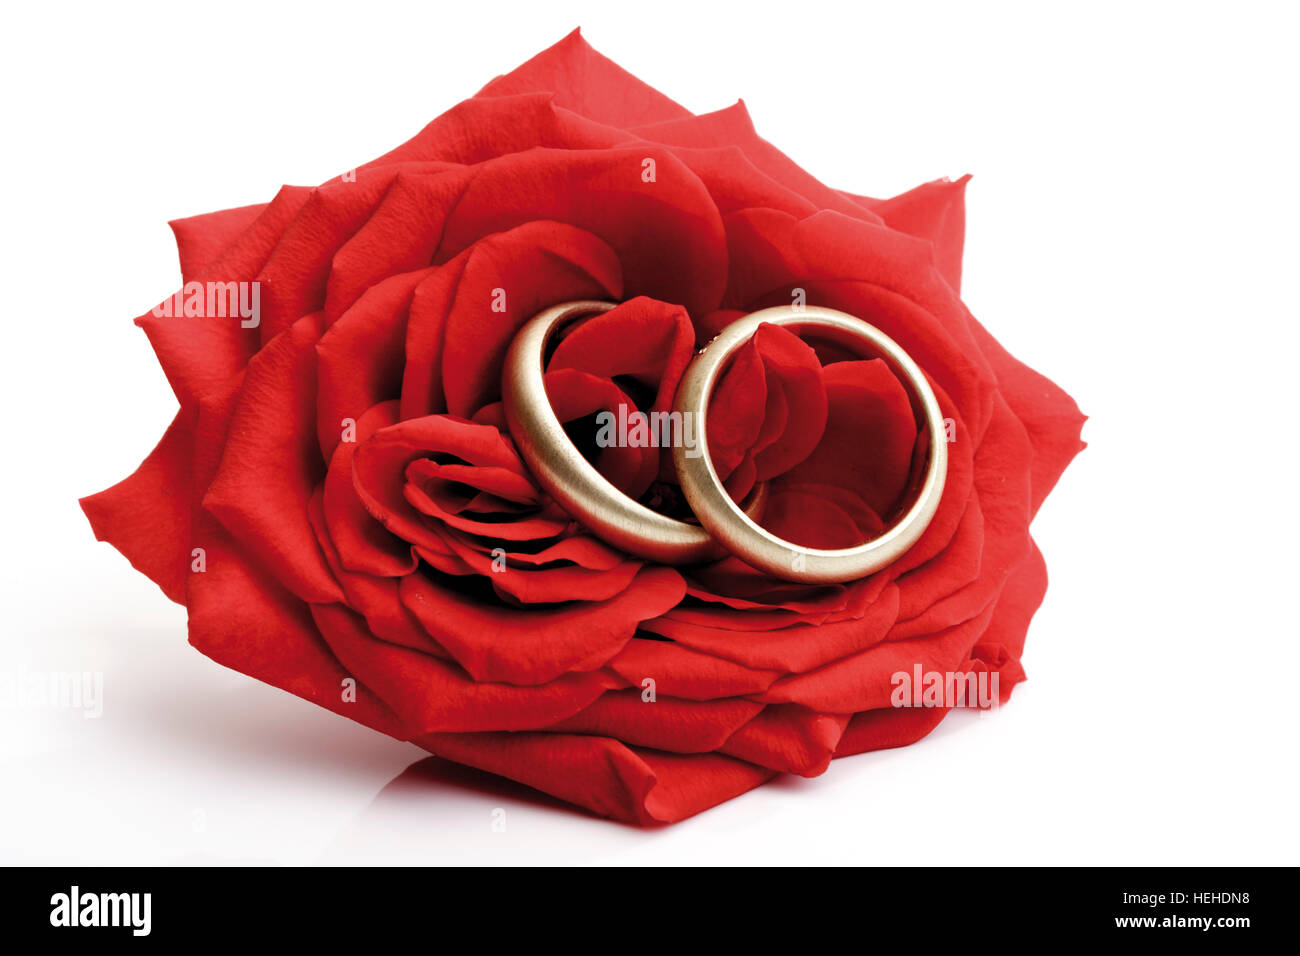 ring jewelry rings flower market etsy red rose gift il